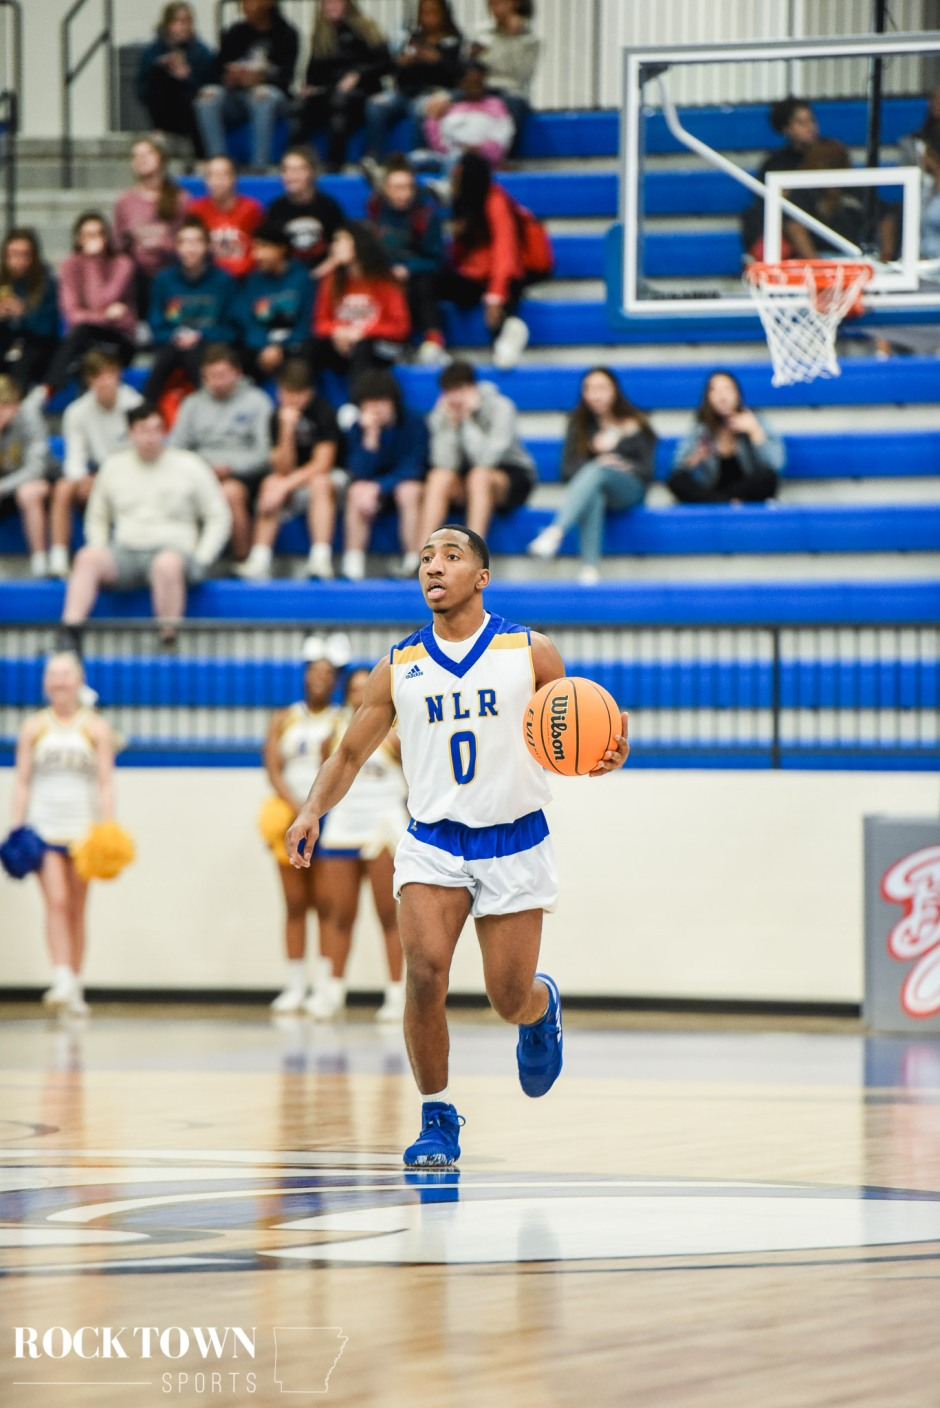 NLR_conway_bball_2020(i)-21